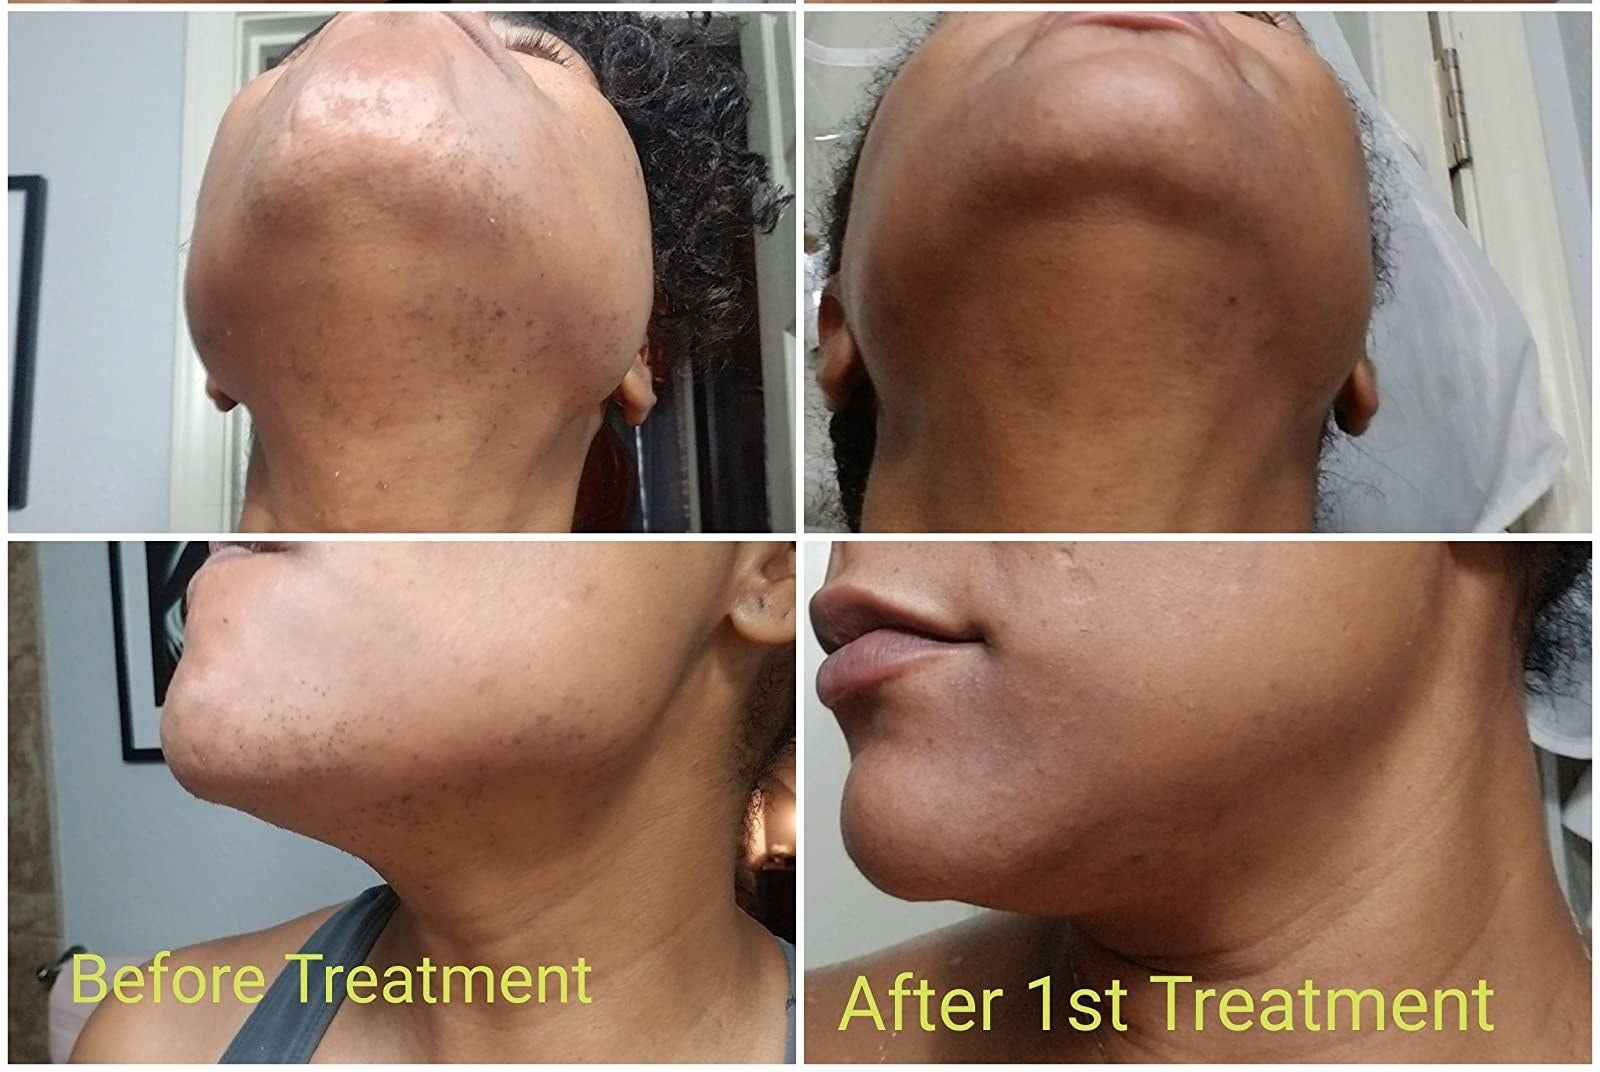 Reviewer showing before-and-after results of using Mederna Scar Cream